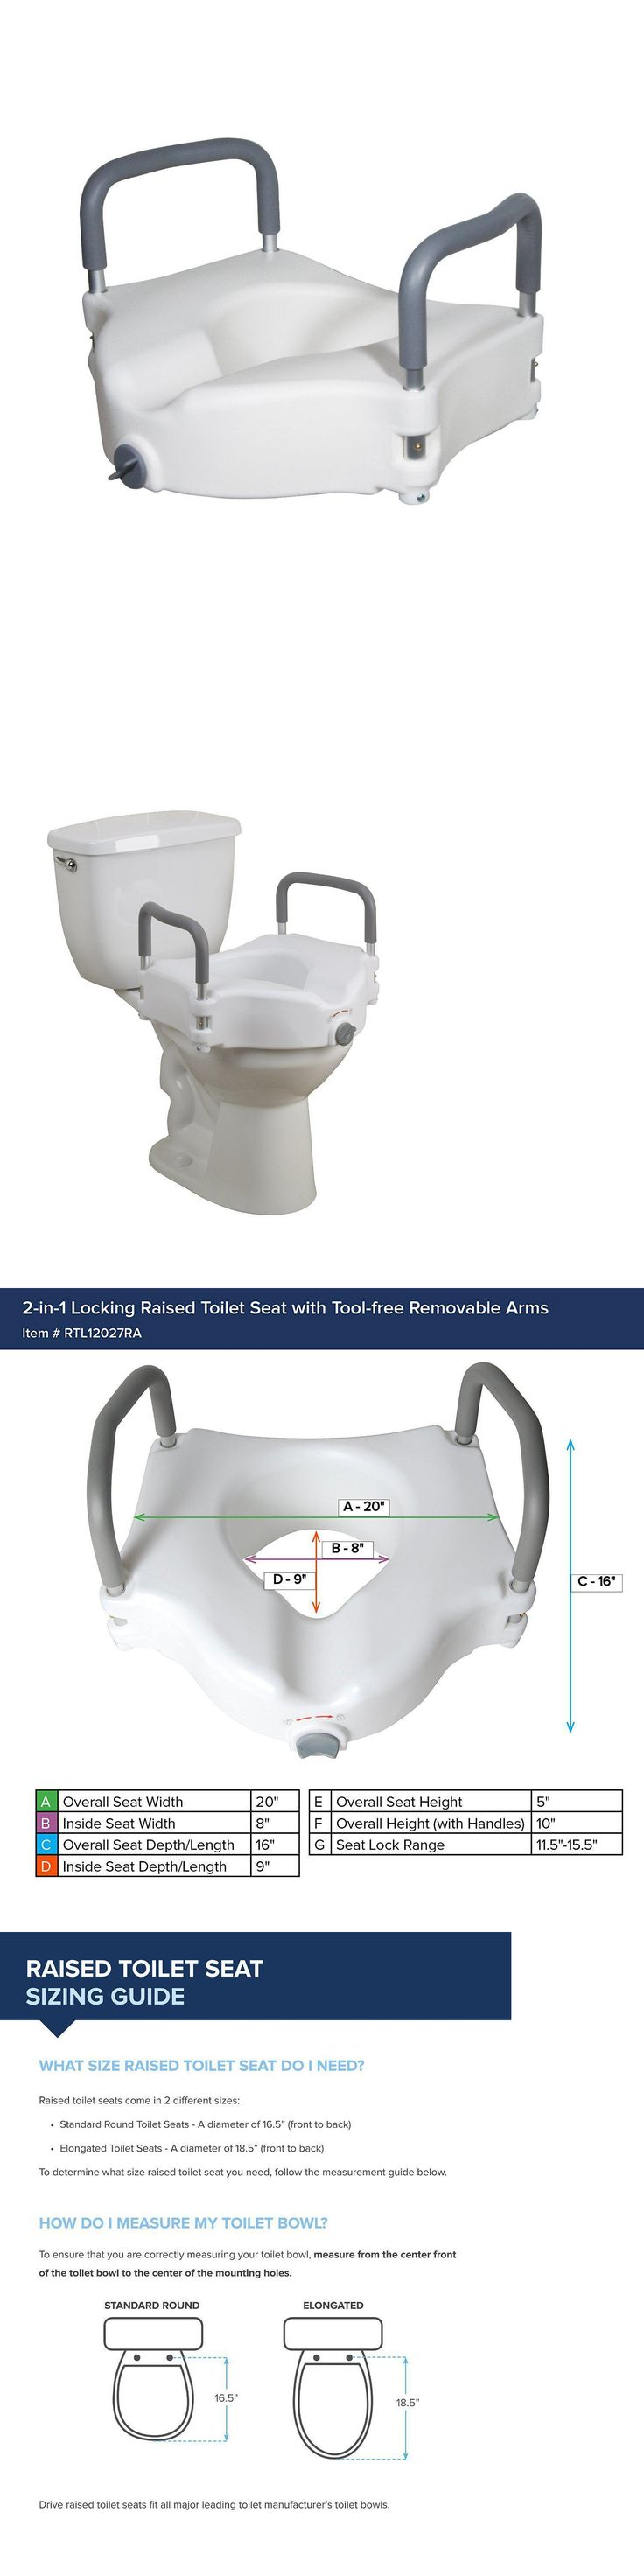 Toilet Seats: Raised Toilet Seat Portable Removable Padded Arms -> BUY IT NOW ONLY: $31.34 on eBay!